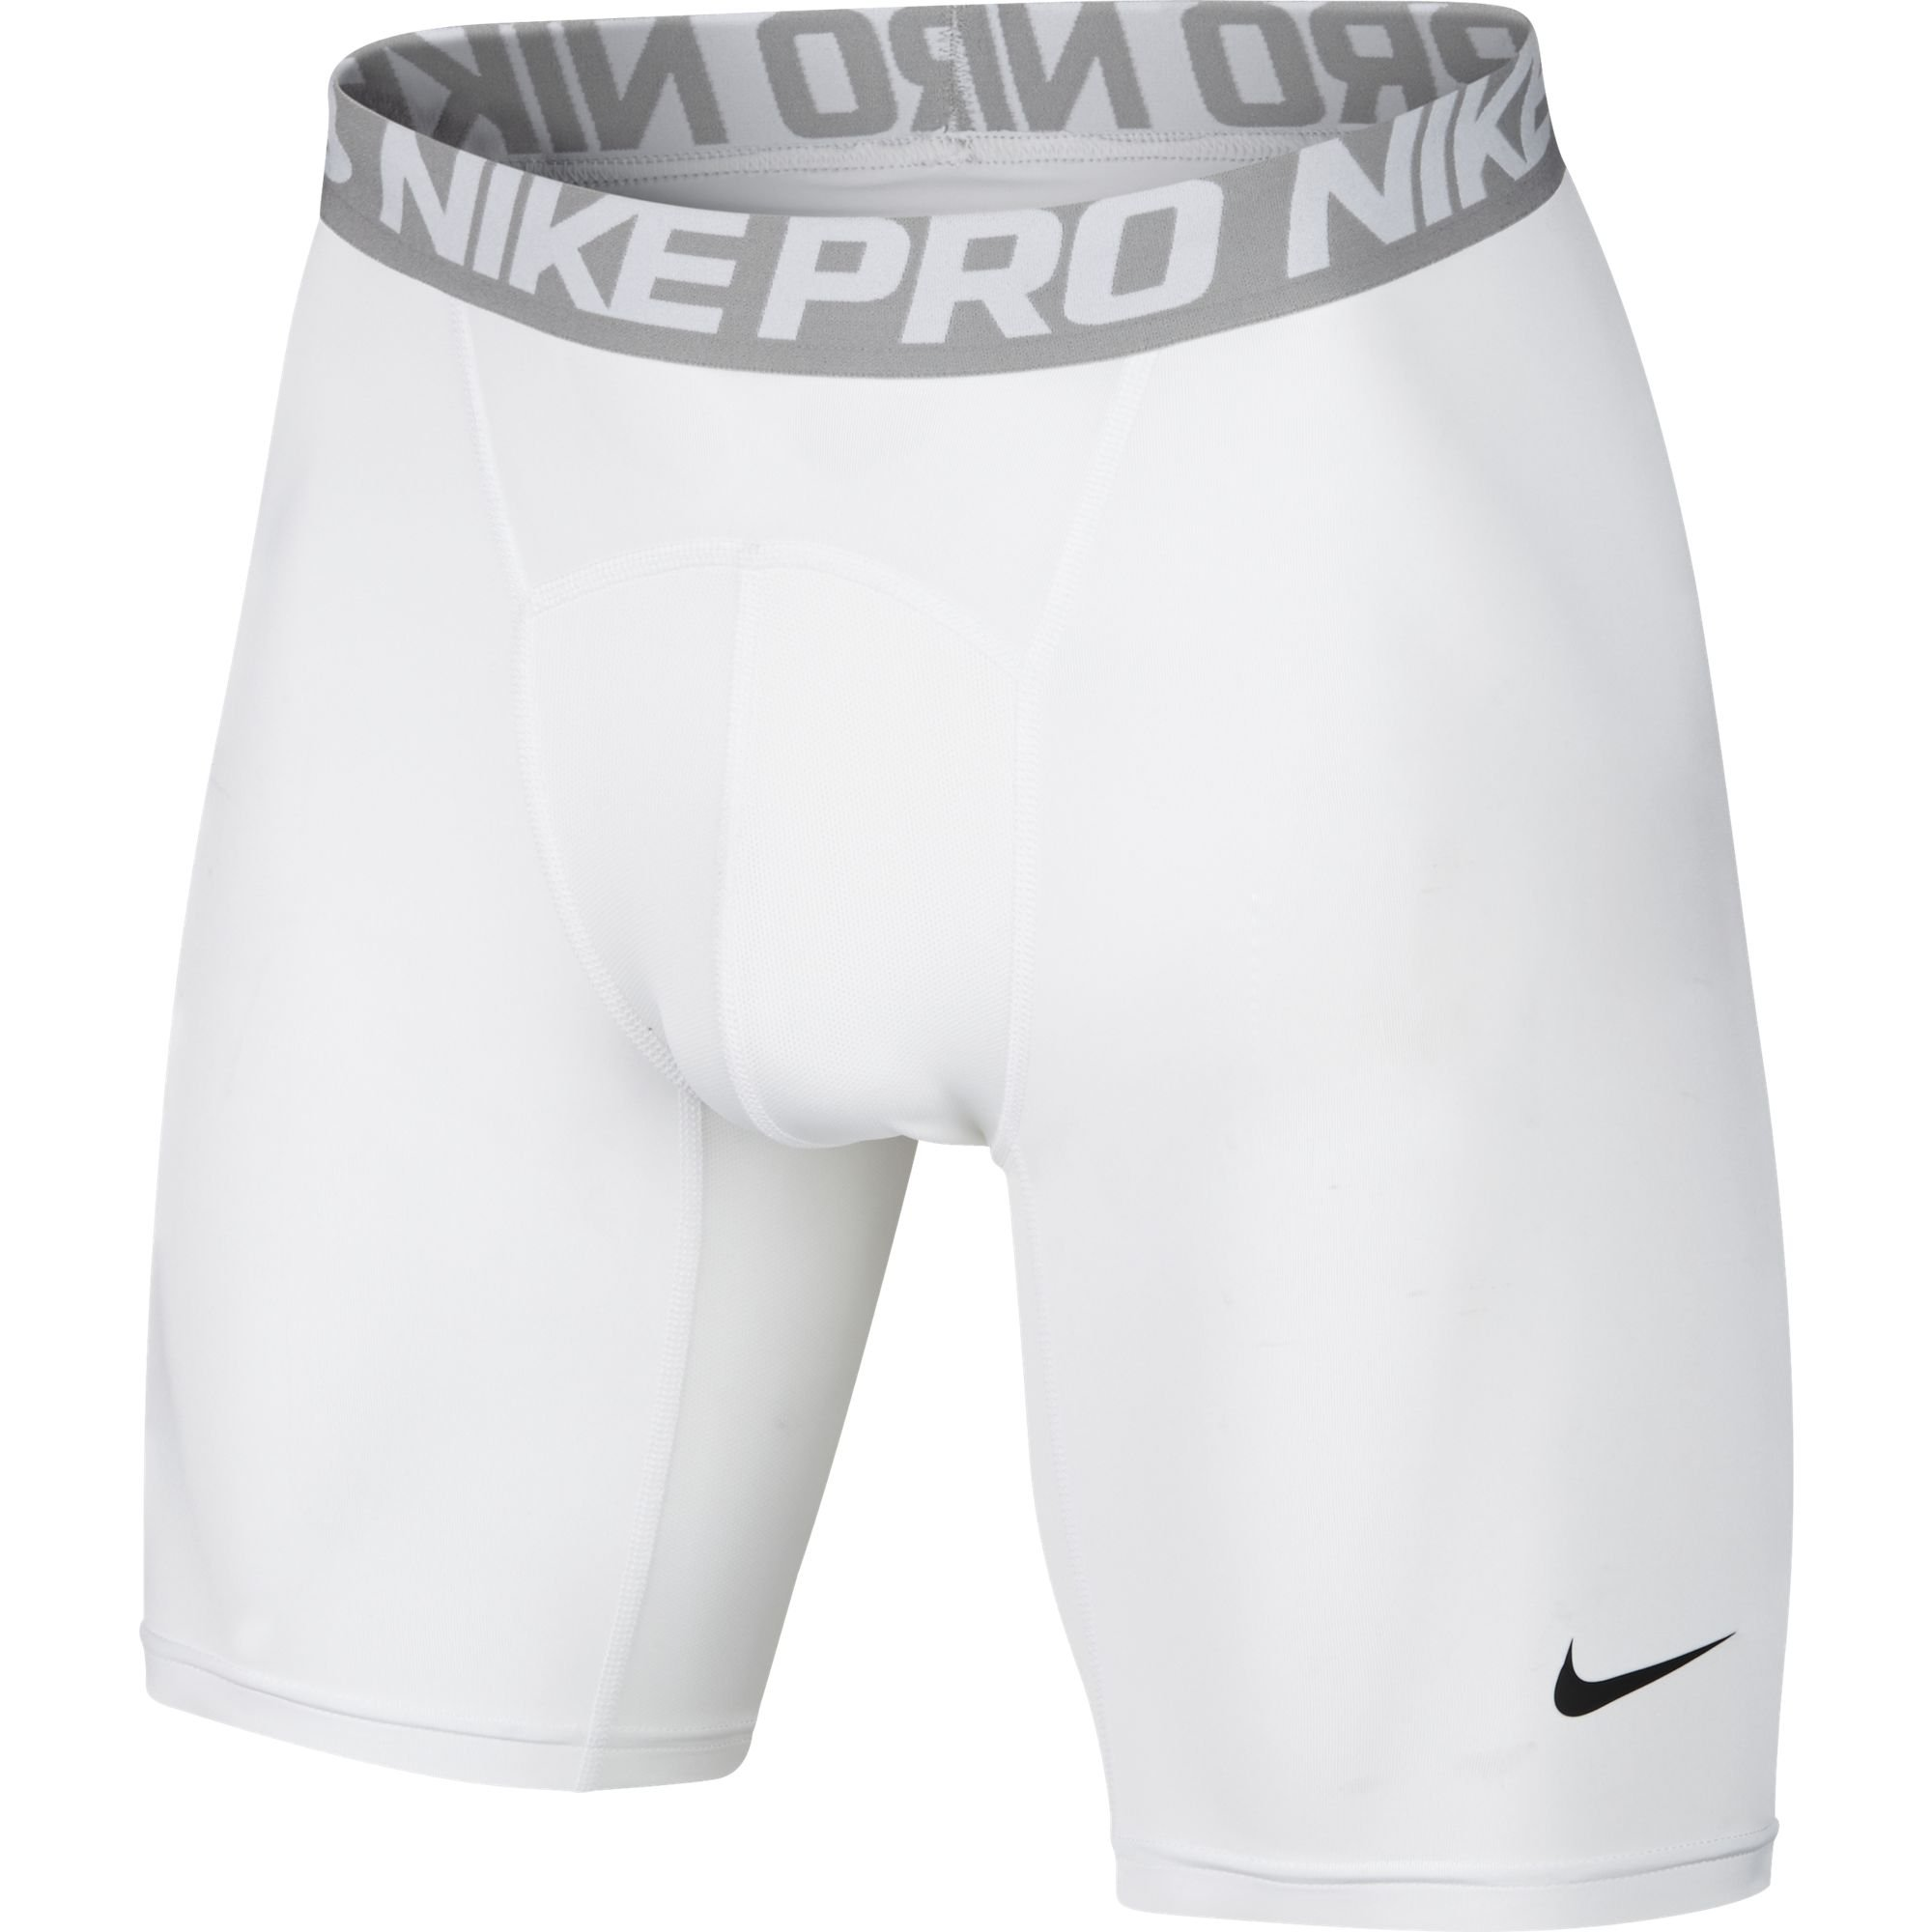 NIKE Men's Pro Shorts, White/Matte Silver/Black, Large